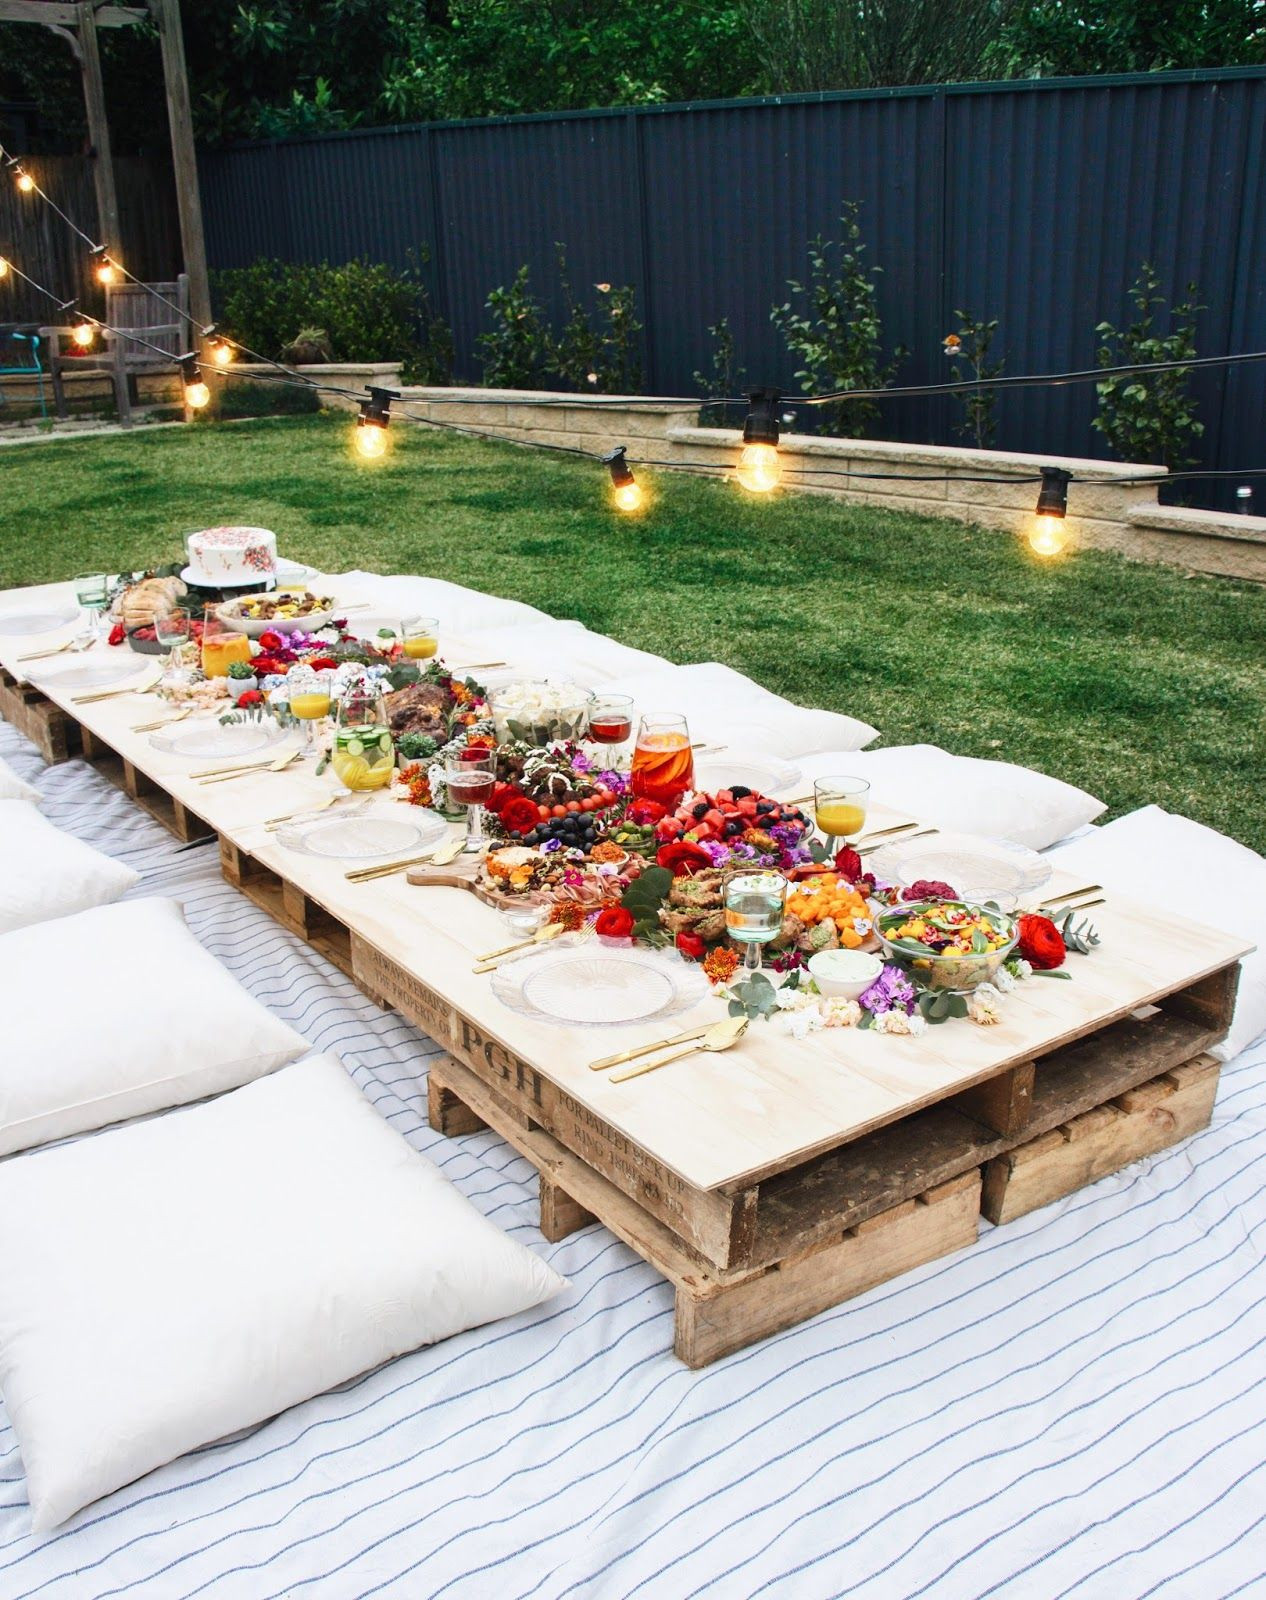 Backyard Party Set Up Ideas  Must See Backyard Party Ideas for a Relaxing and Luxurious